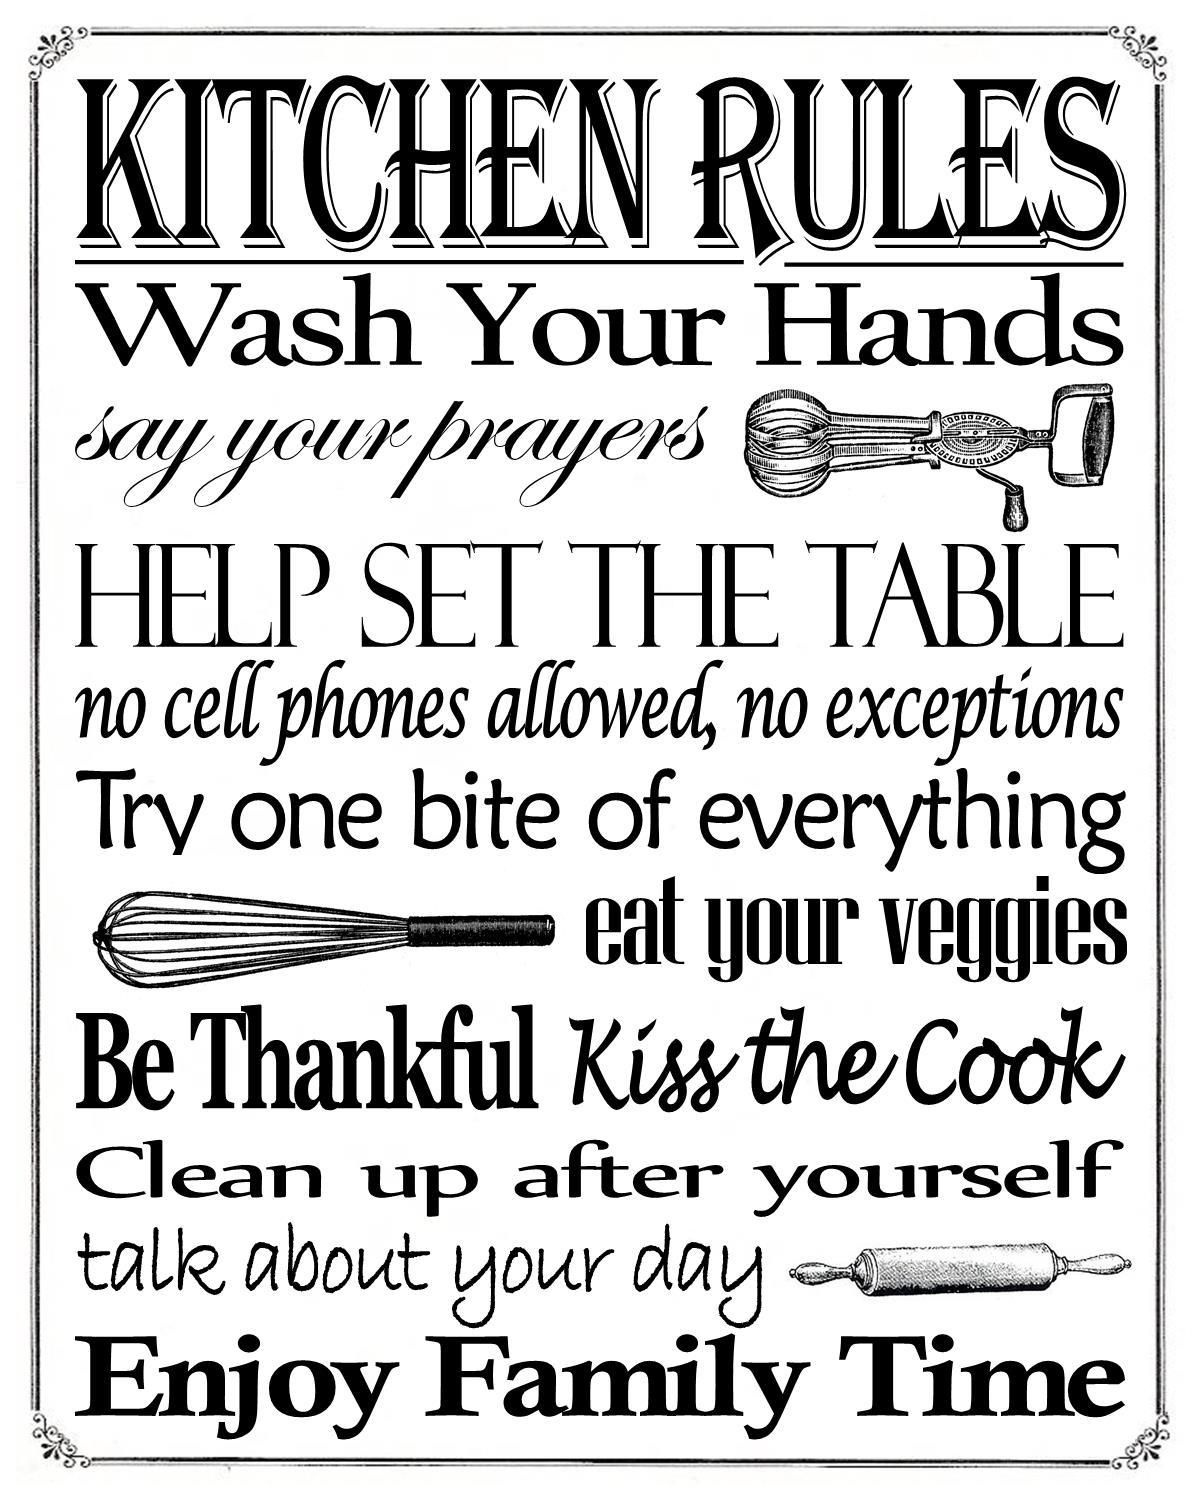 Free Wash Your Hands Signs Printable (75+ Images In Collection) Page 1 - Free Wash Your Hands Signs Printable